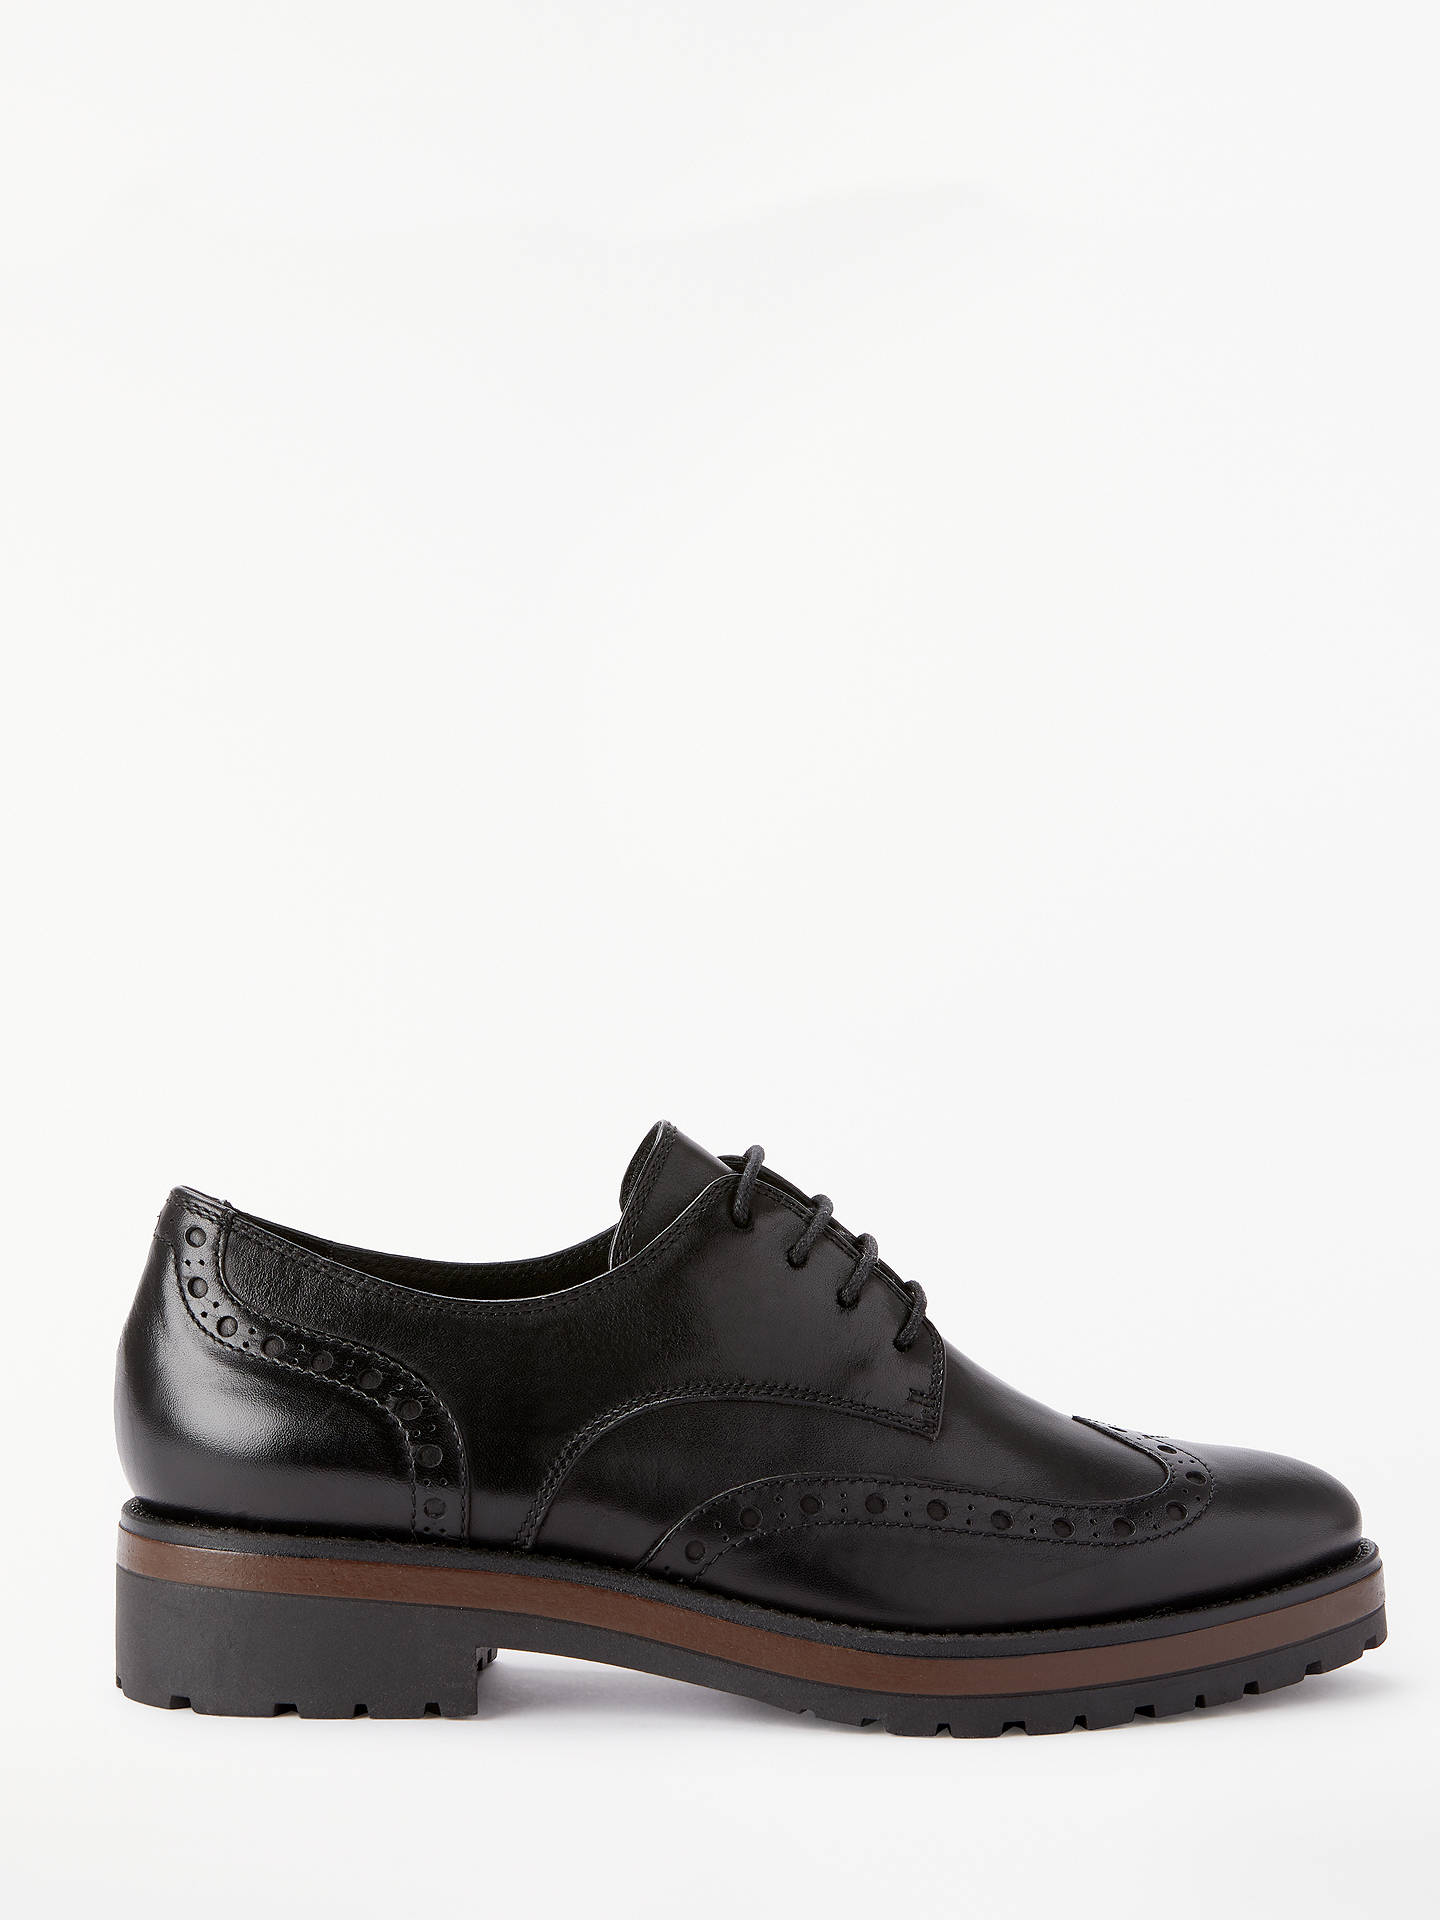 Buy John Lewis & Partners Francesca Chunky Heel Brogues, Black Leather, 3 Online at johnlewis.com